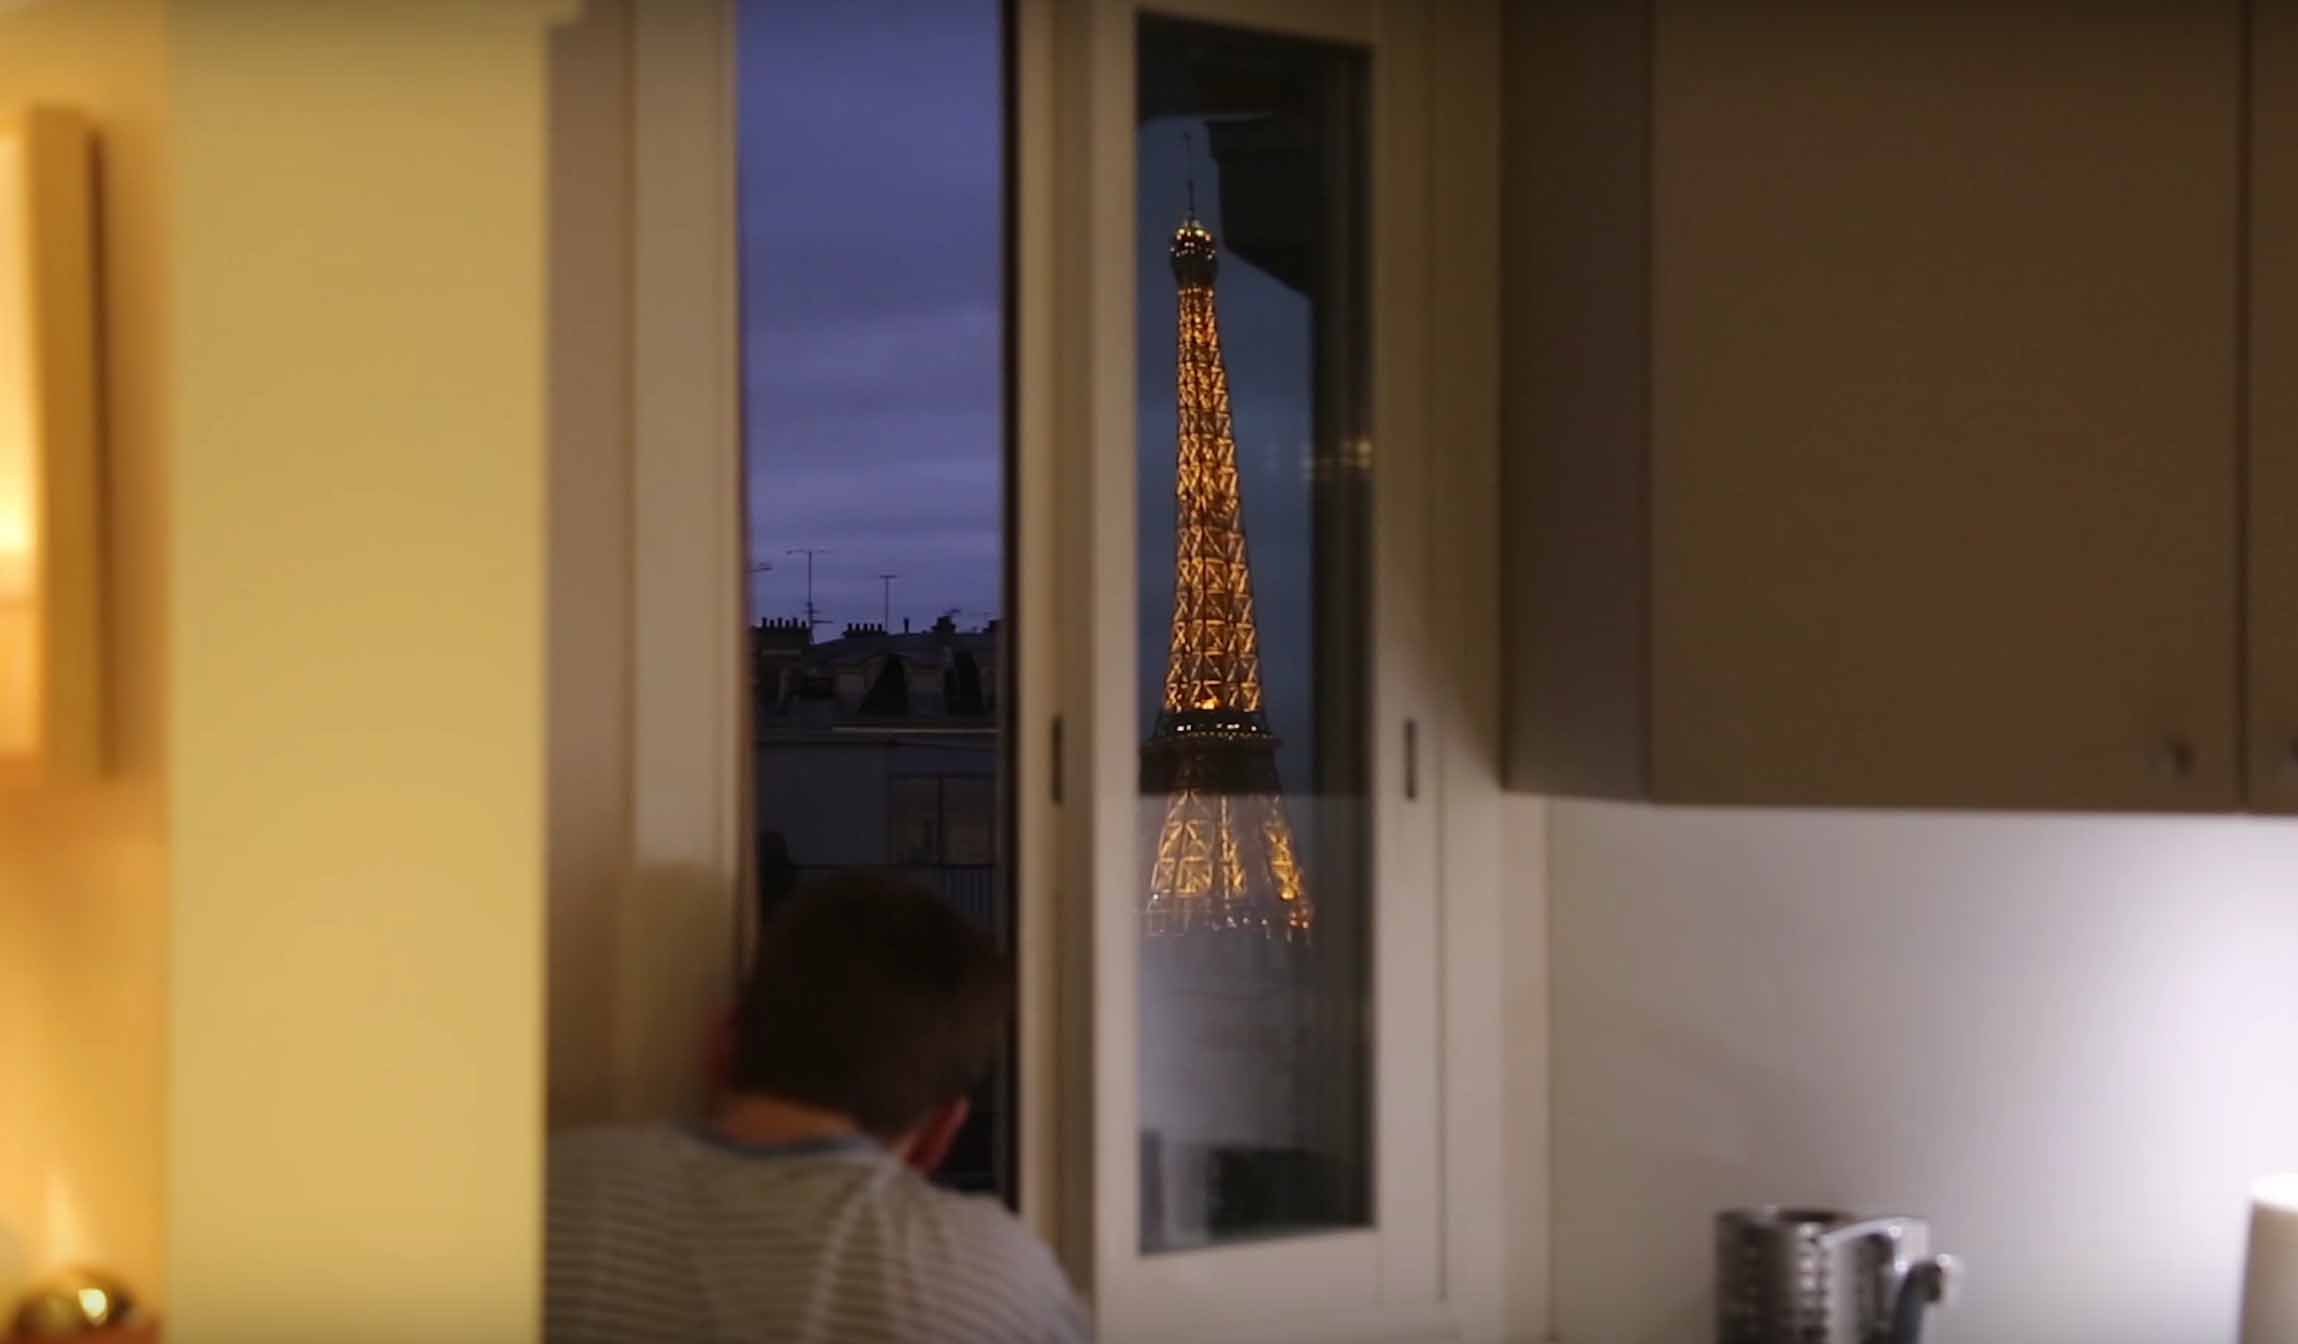 A nighttime view of the Eiffel Tower from a bedroom window in Paris, France thanks to French Redditor Lurluberlu's giant periscope.